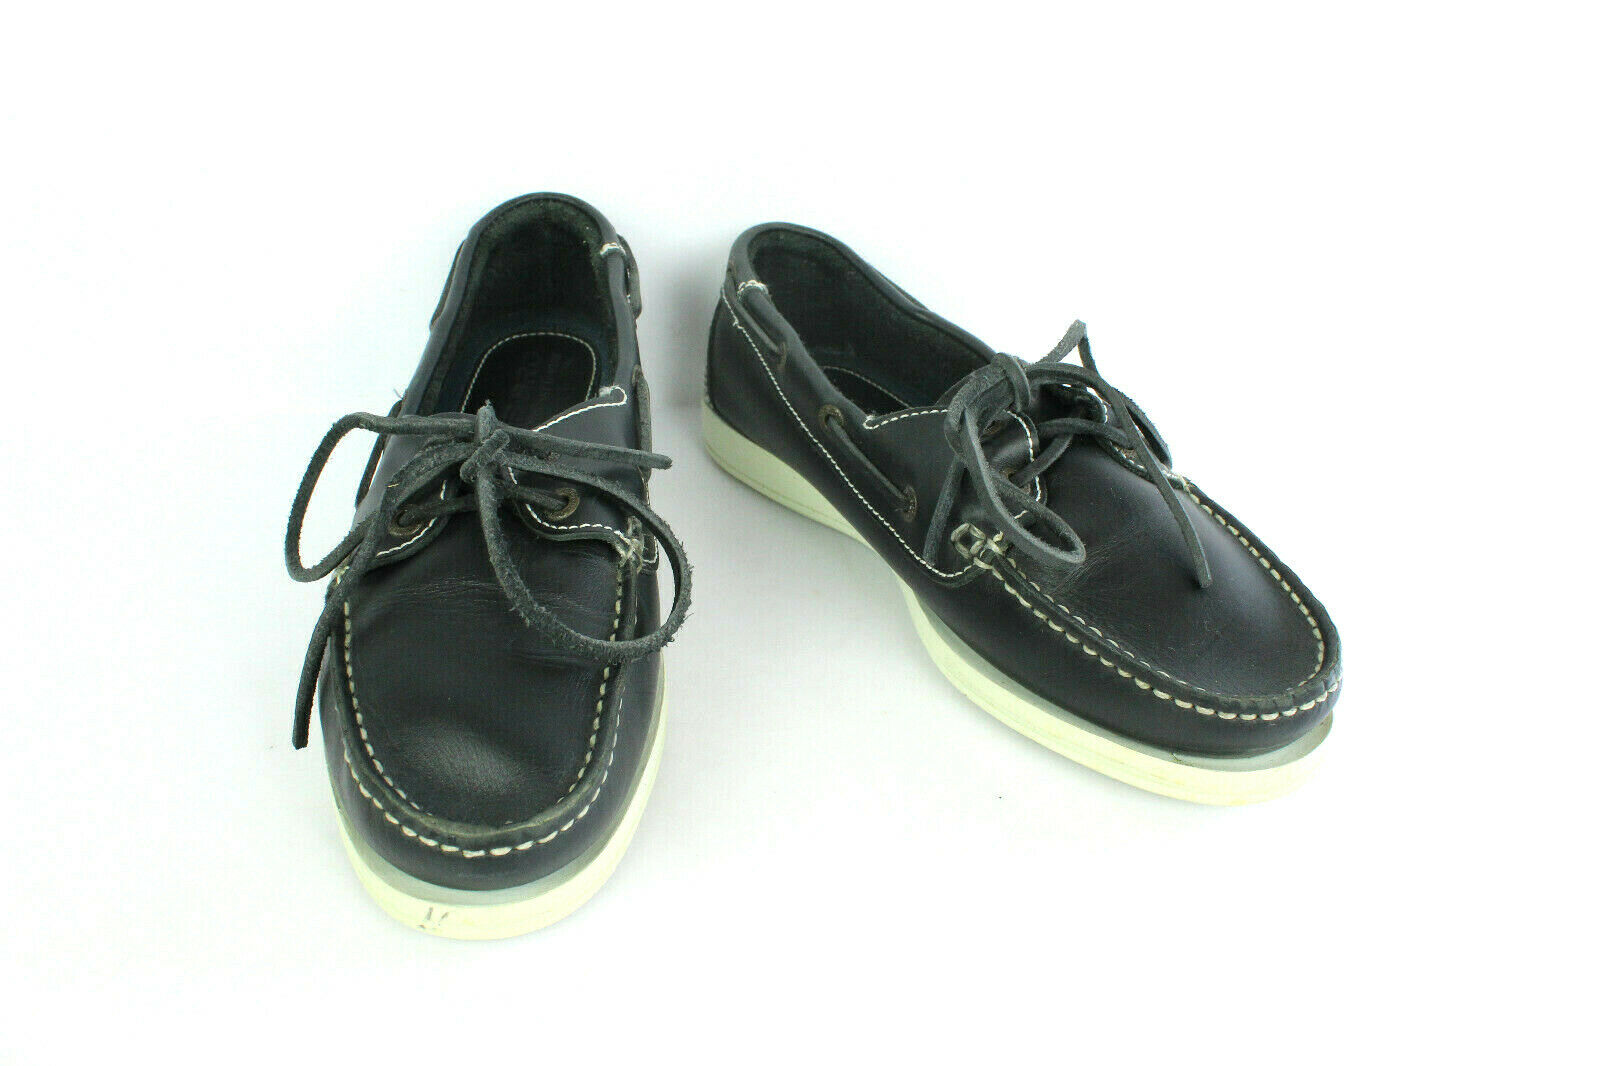 Mocassin TRIBORD Leather Midnight bluee T 39   VERY GOOD CONDITION